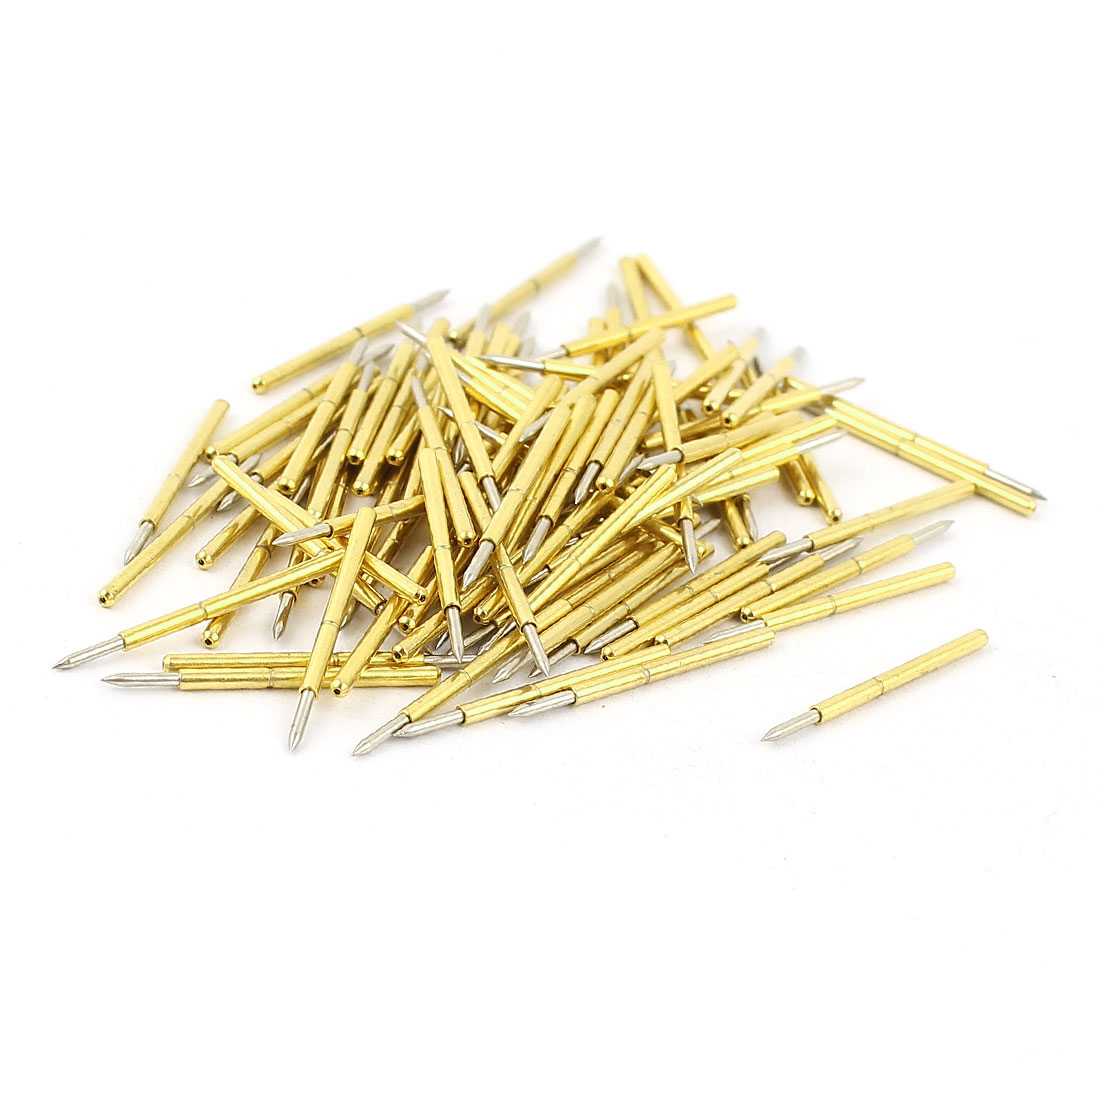 100 Pcs P75-B1 0.74mm Spear Tip Spring Testing Probes Pin 16mm Length